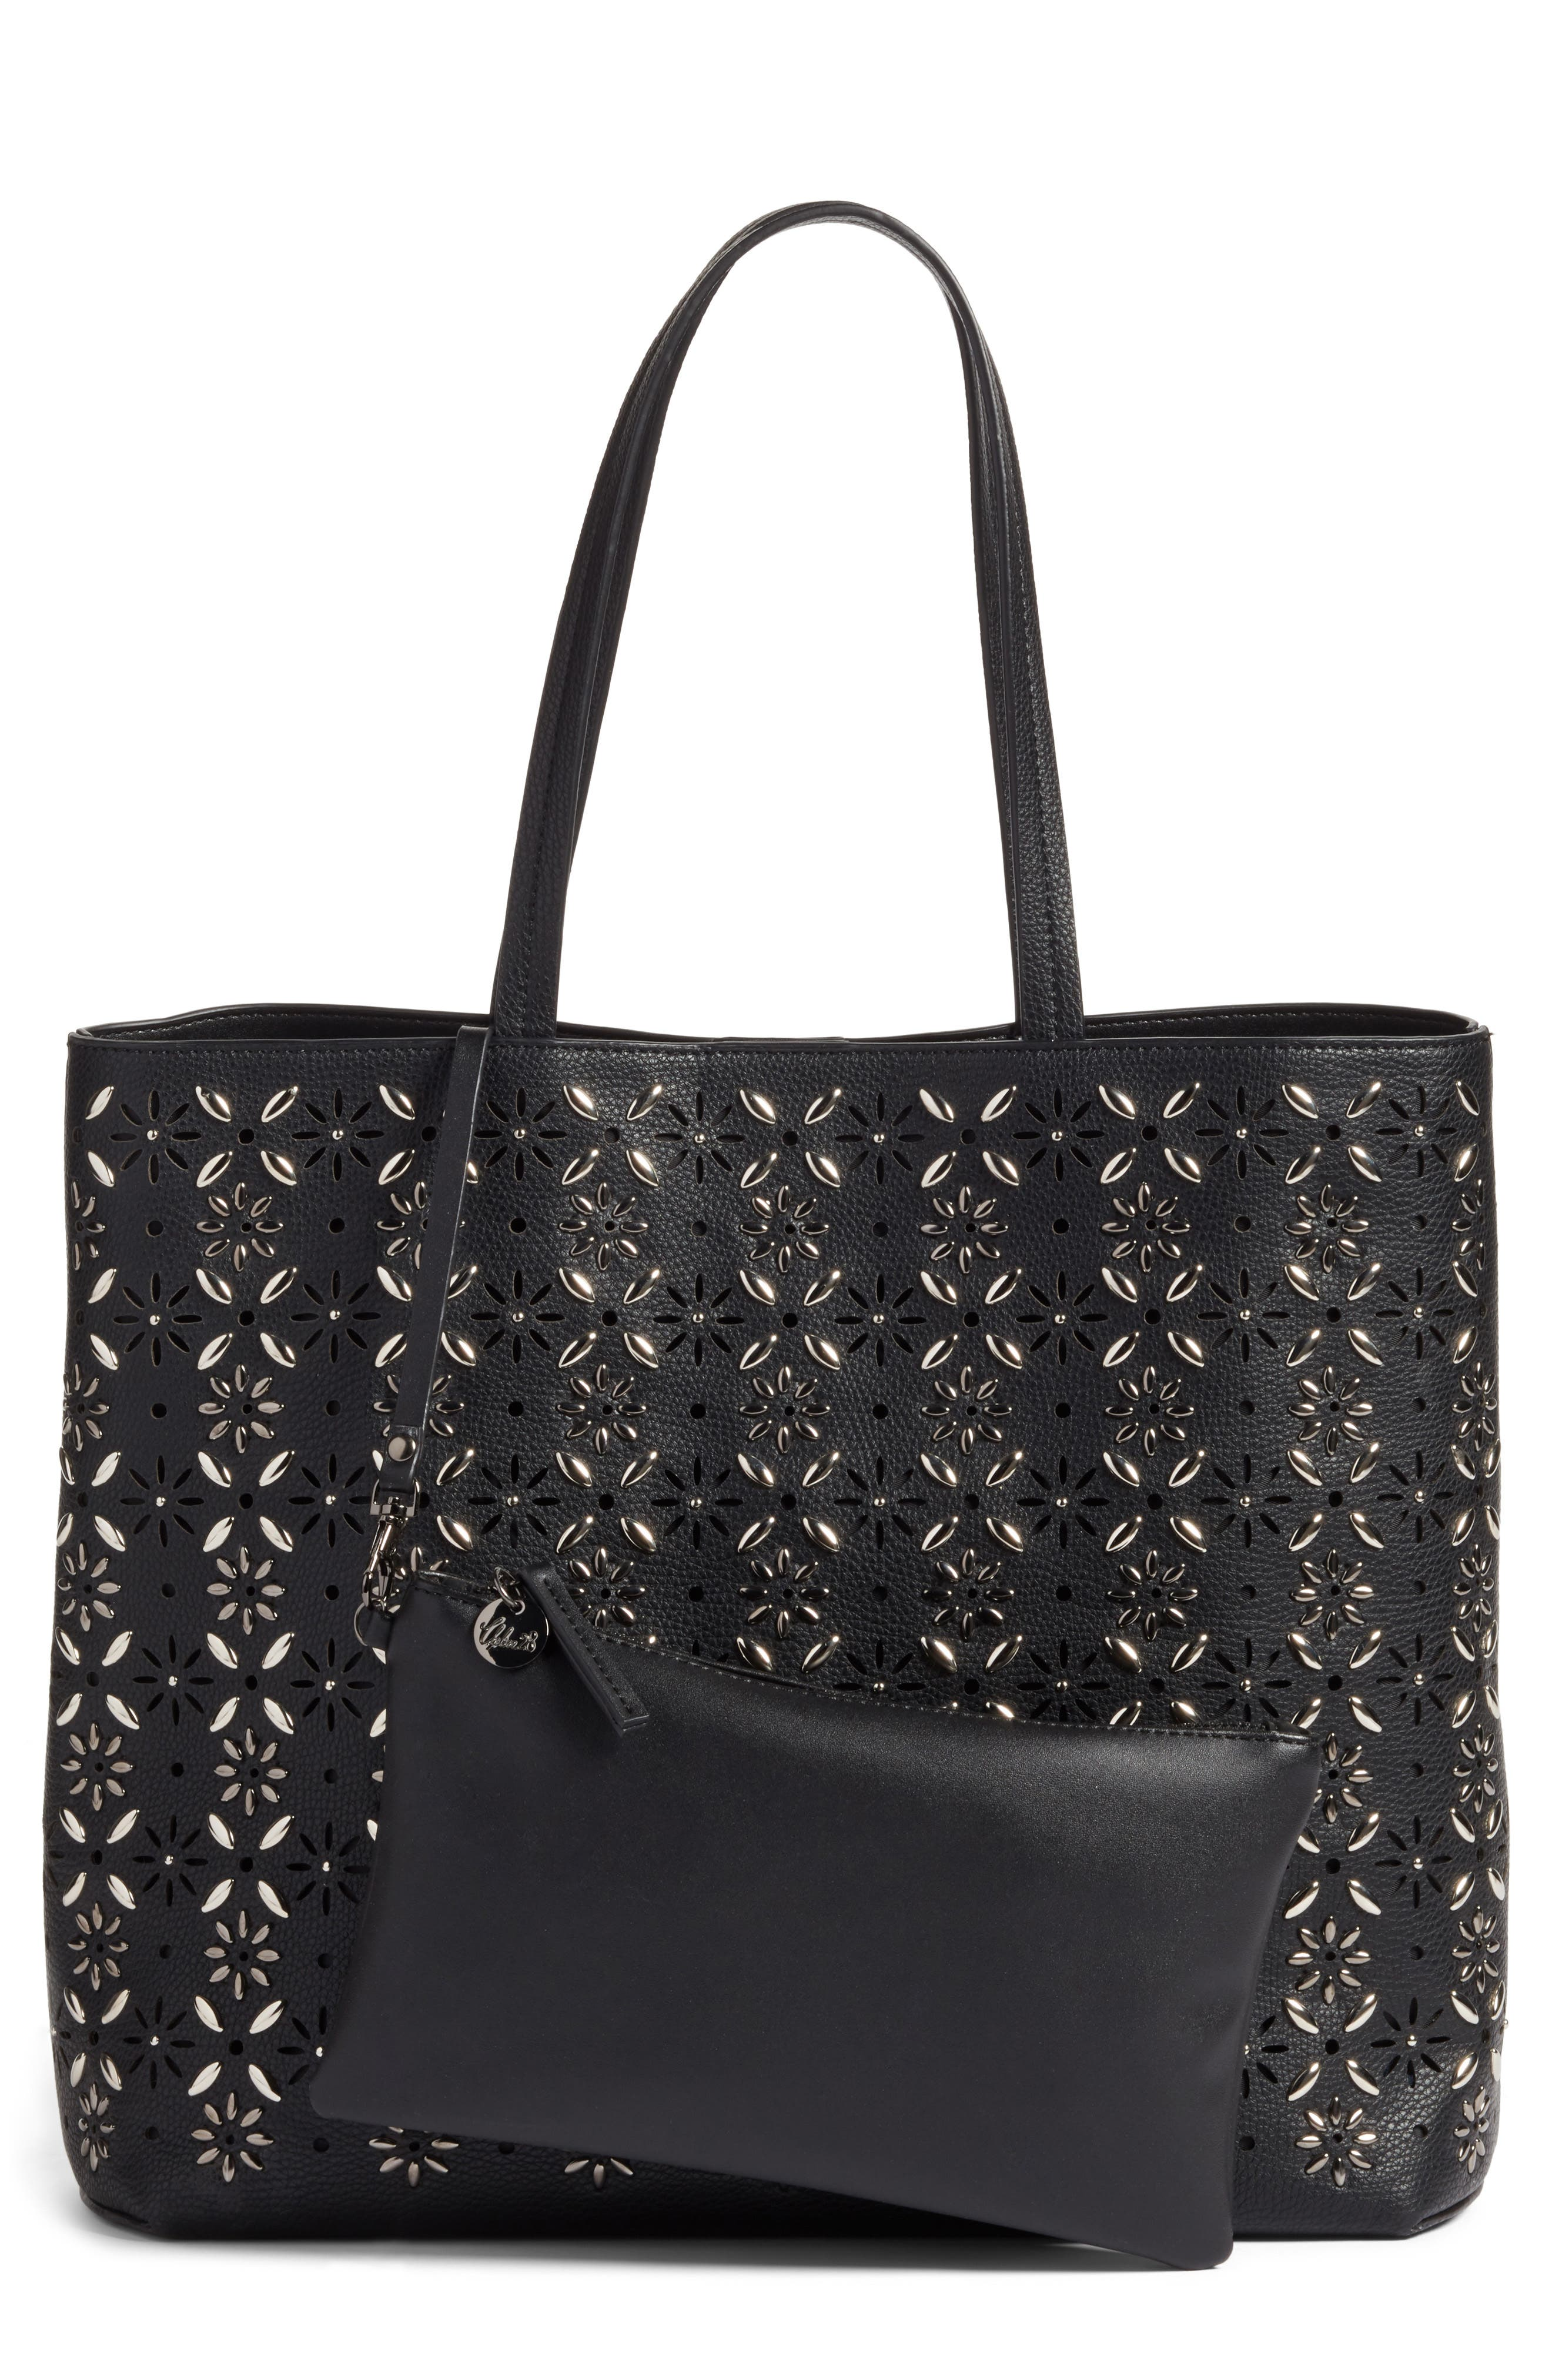 Chelsea28 Kaylee Embellished Faux Leather Tote